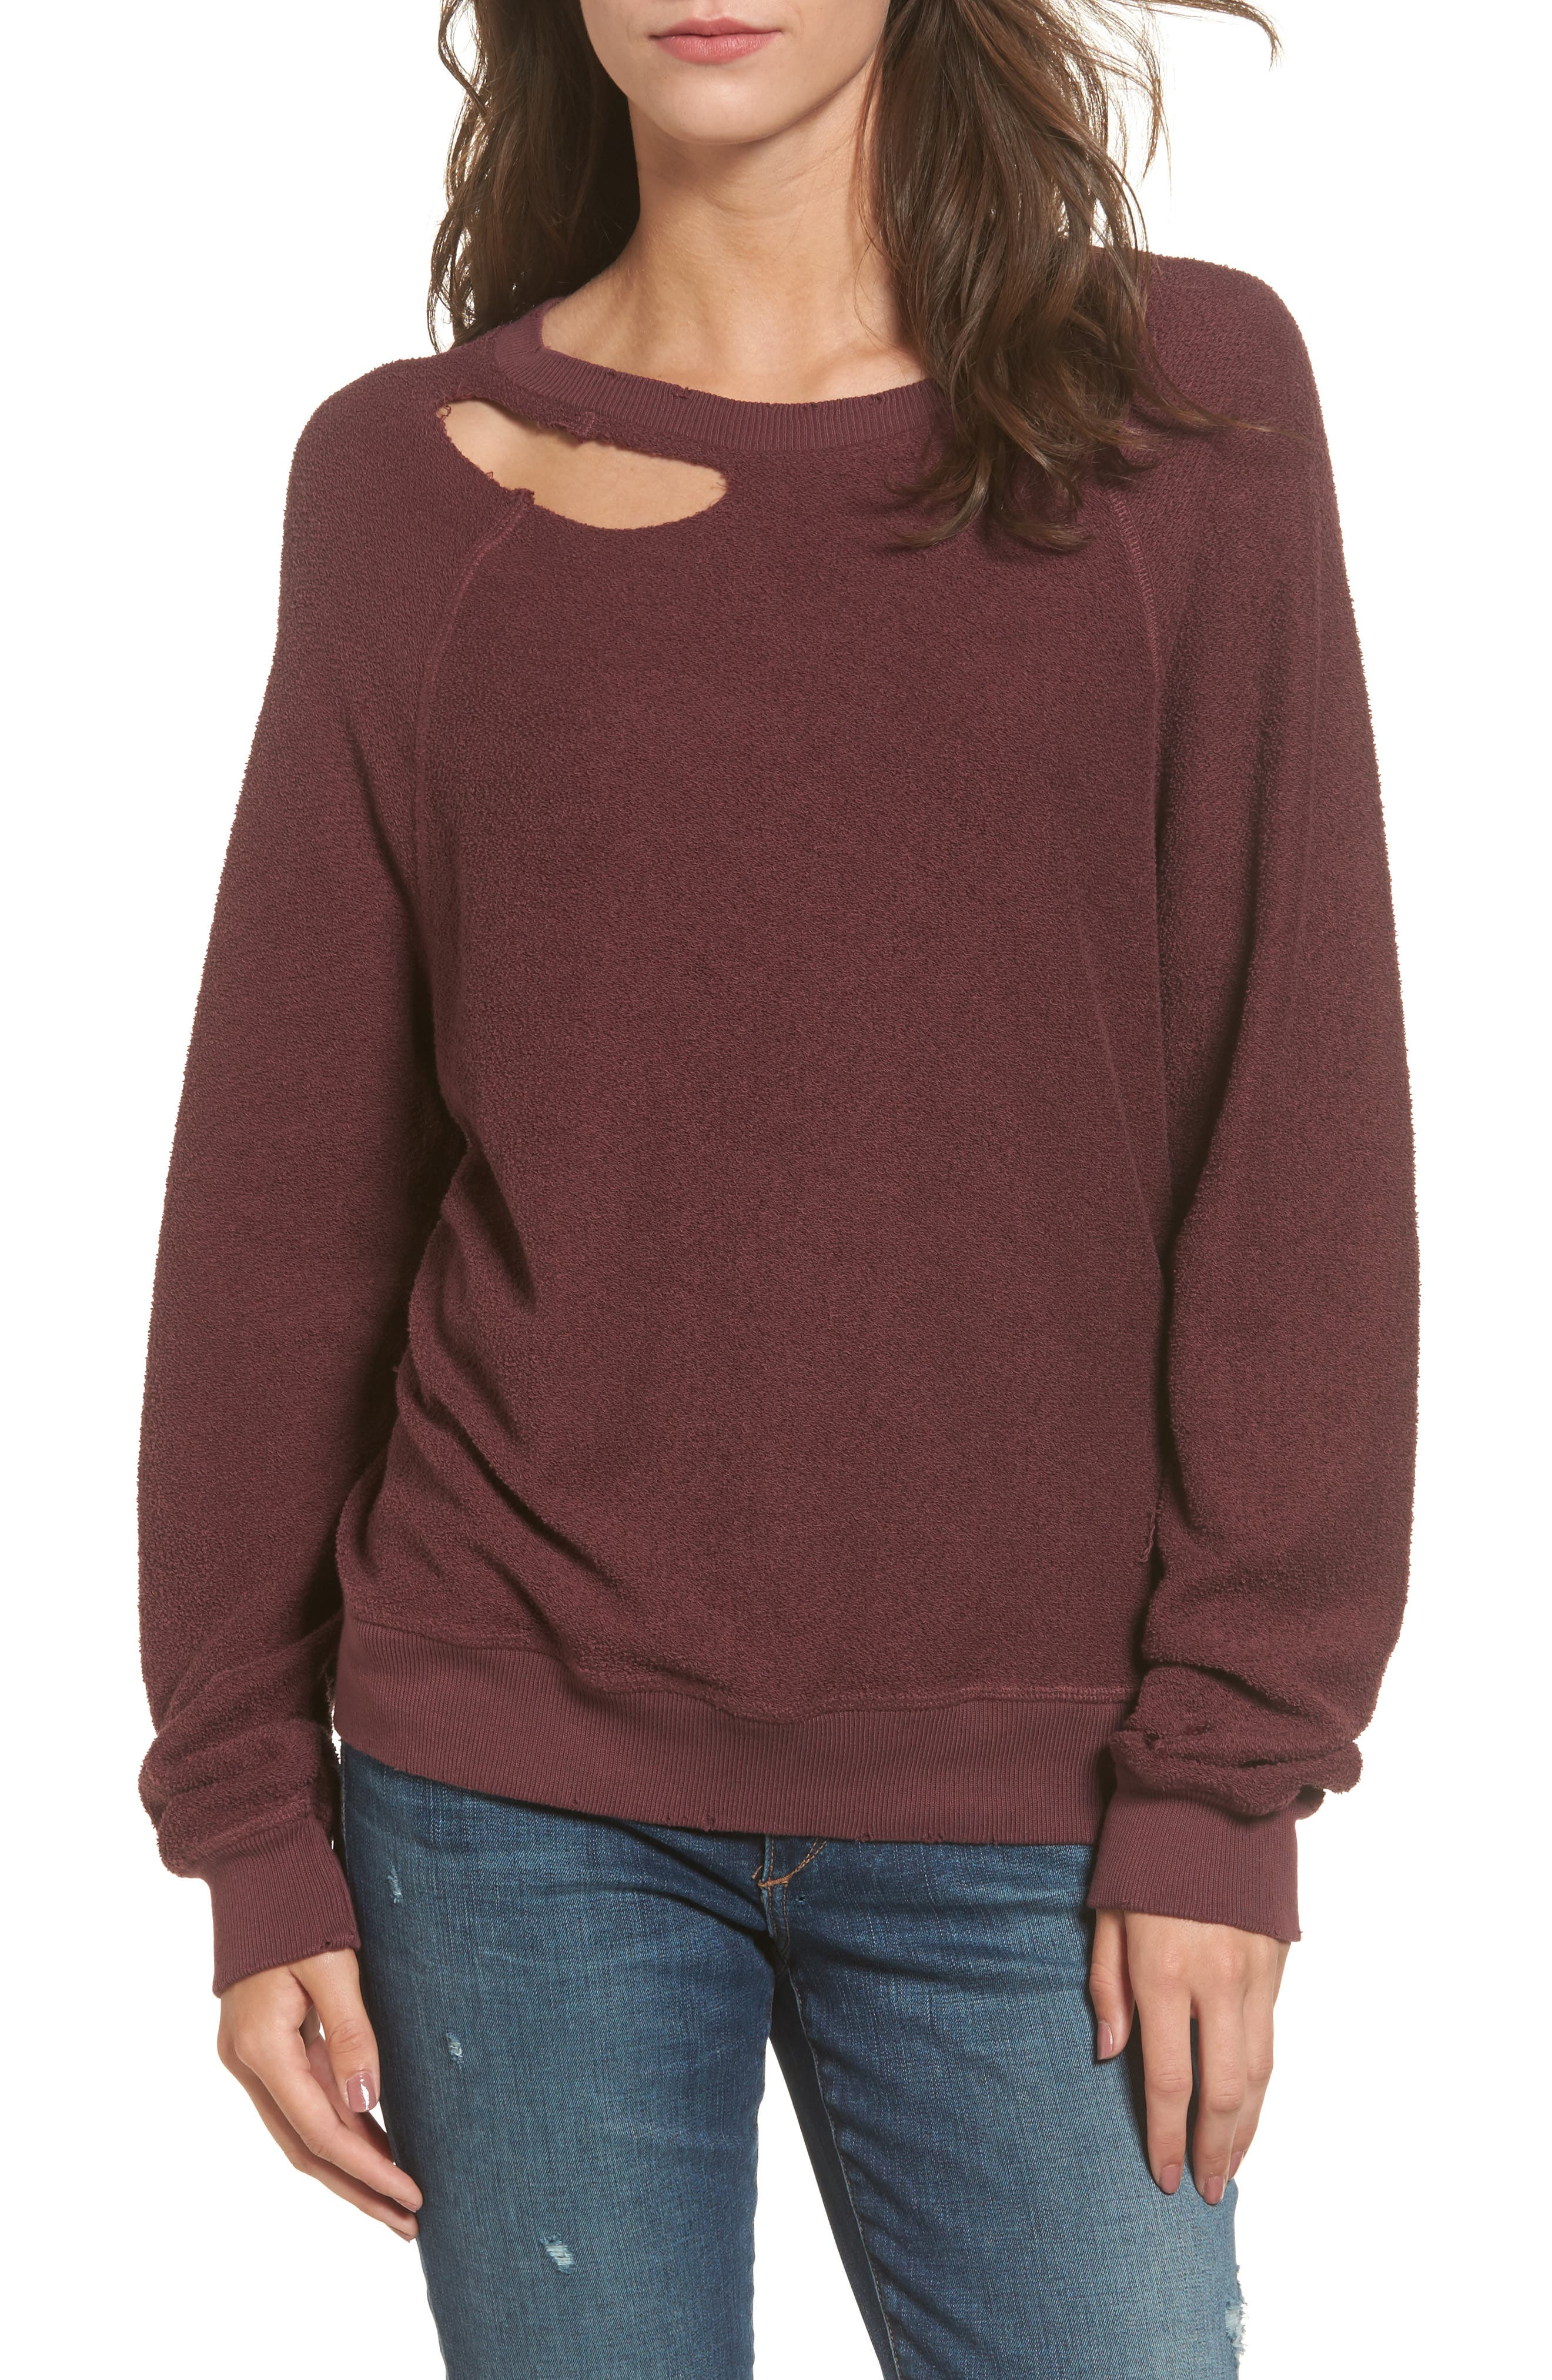 Holden Reverse Distressed Sweatshirt,                             Main thumbnail 1, color,                             930